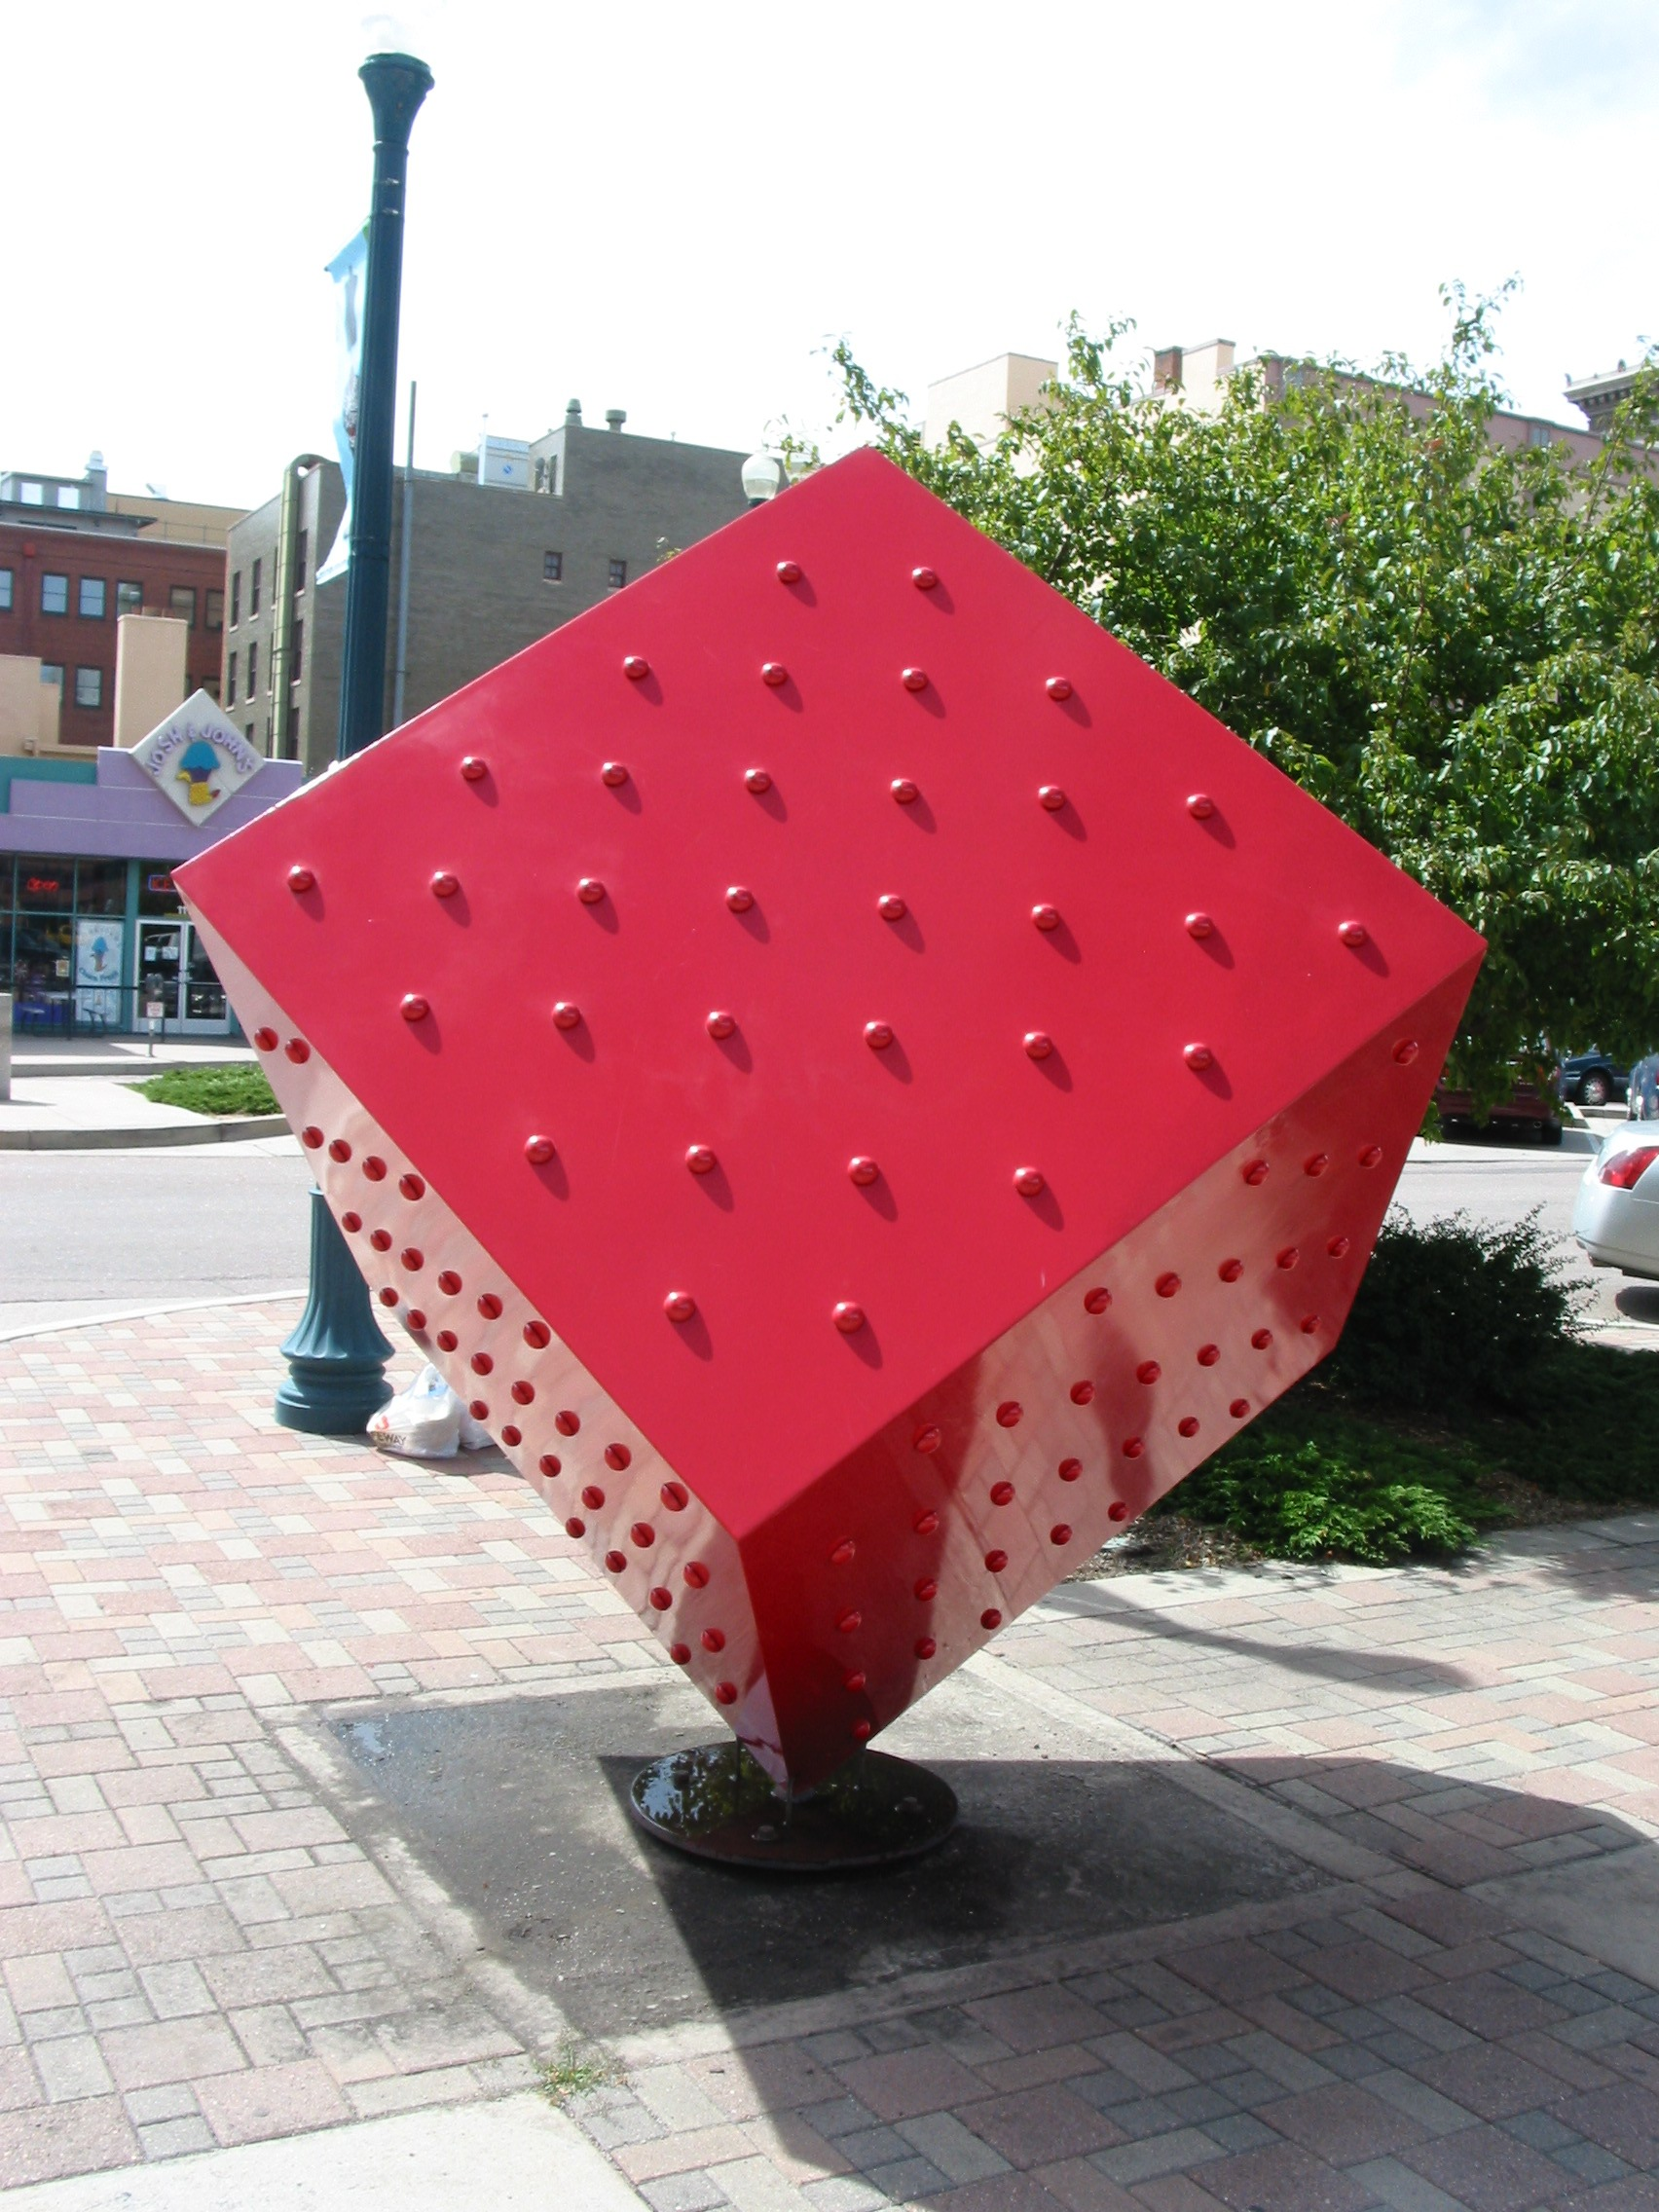 large red cube balancing on one corner